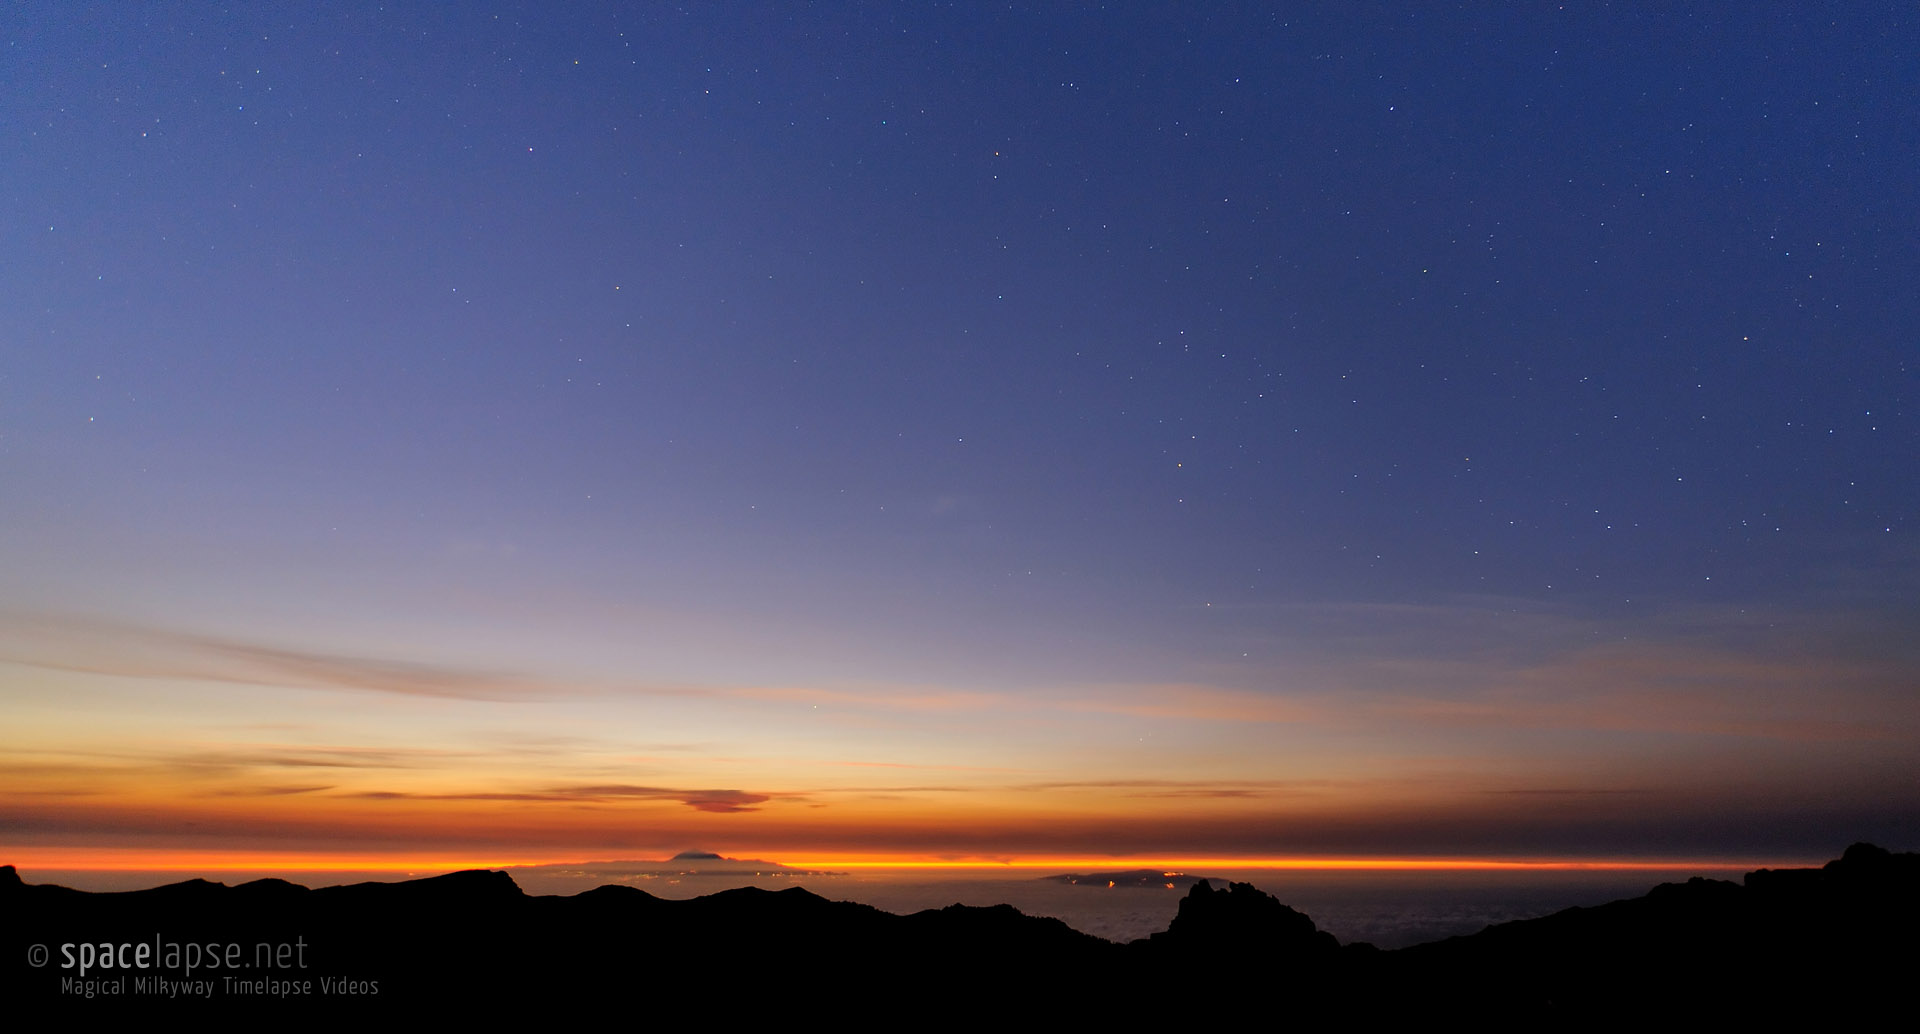 Glowing Earth - Sunrise with view at Canary Islands